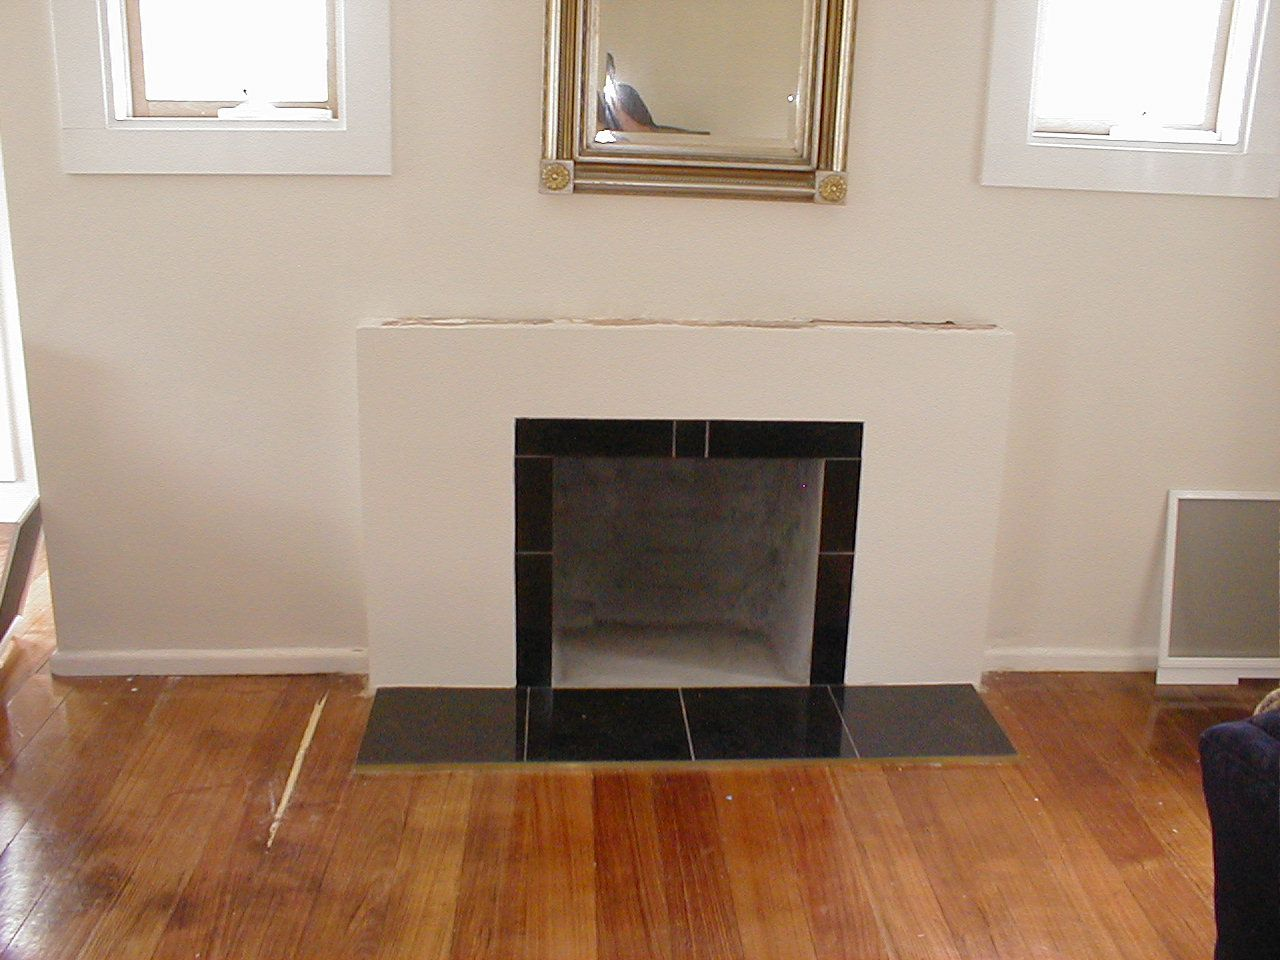 Alfa Img Showing gt Fireplace Hearth Tile